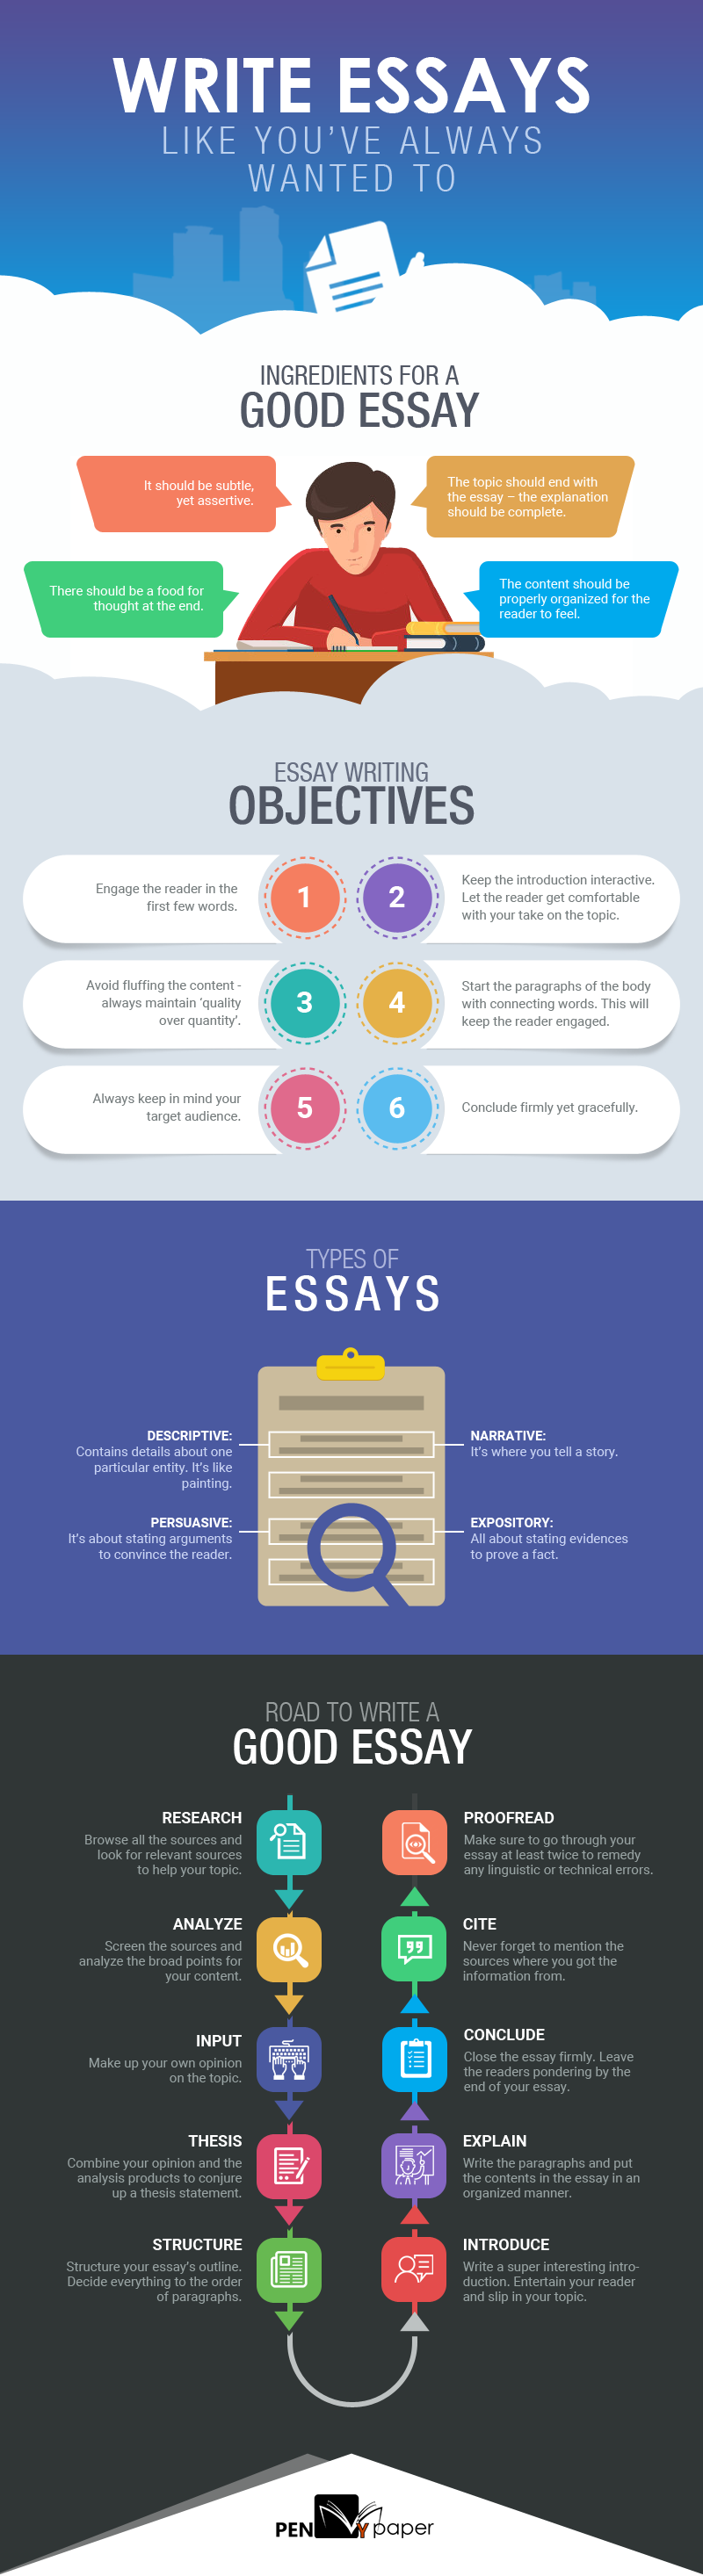 How to Write an Essays